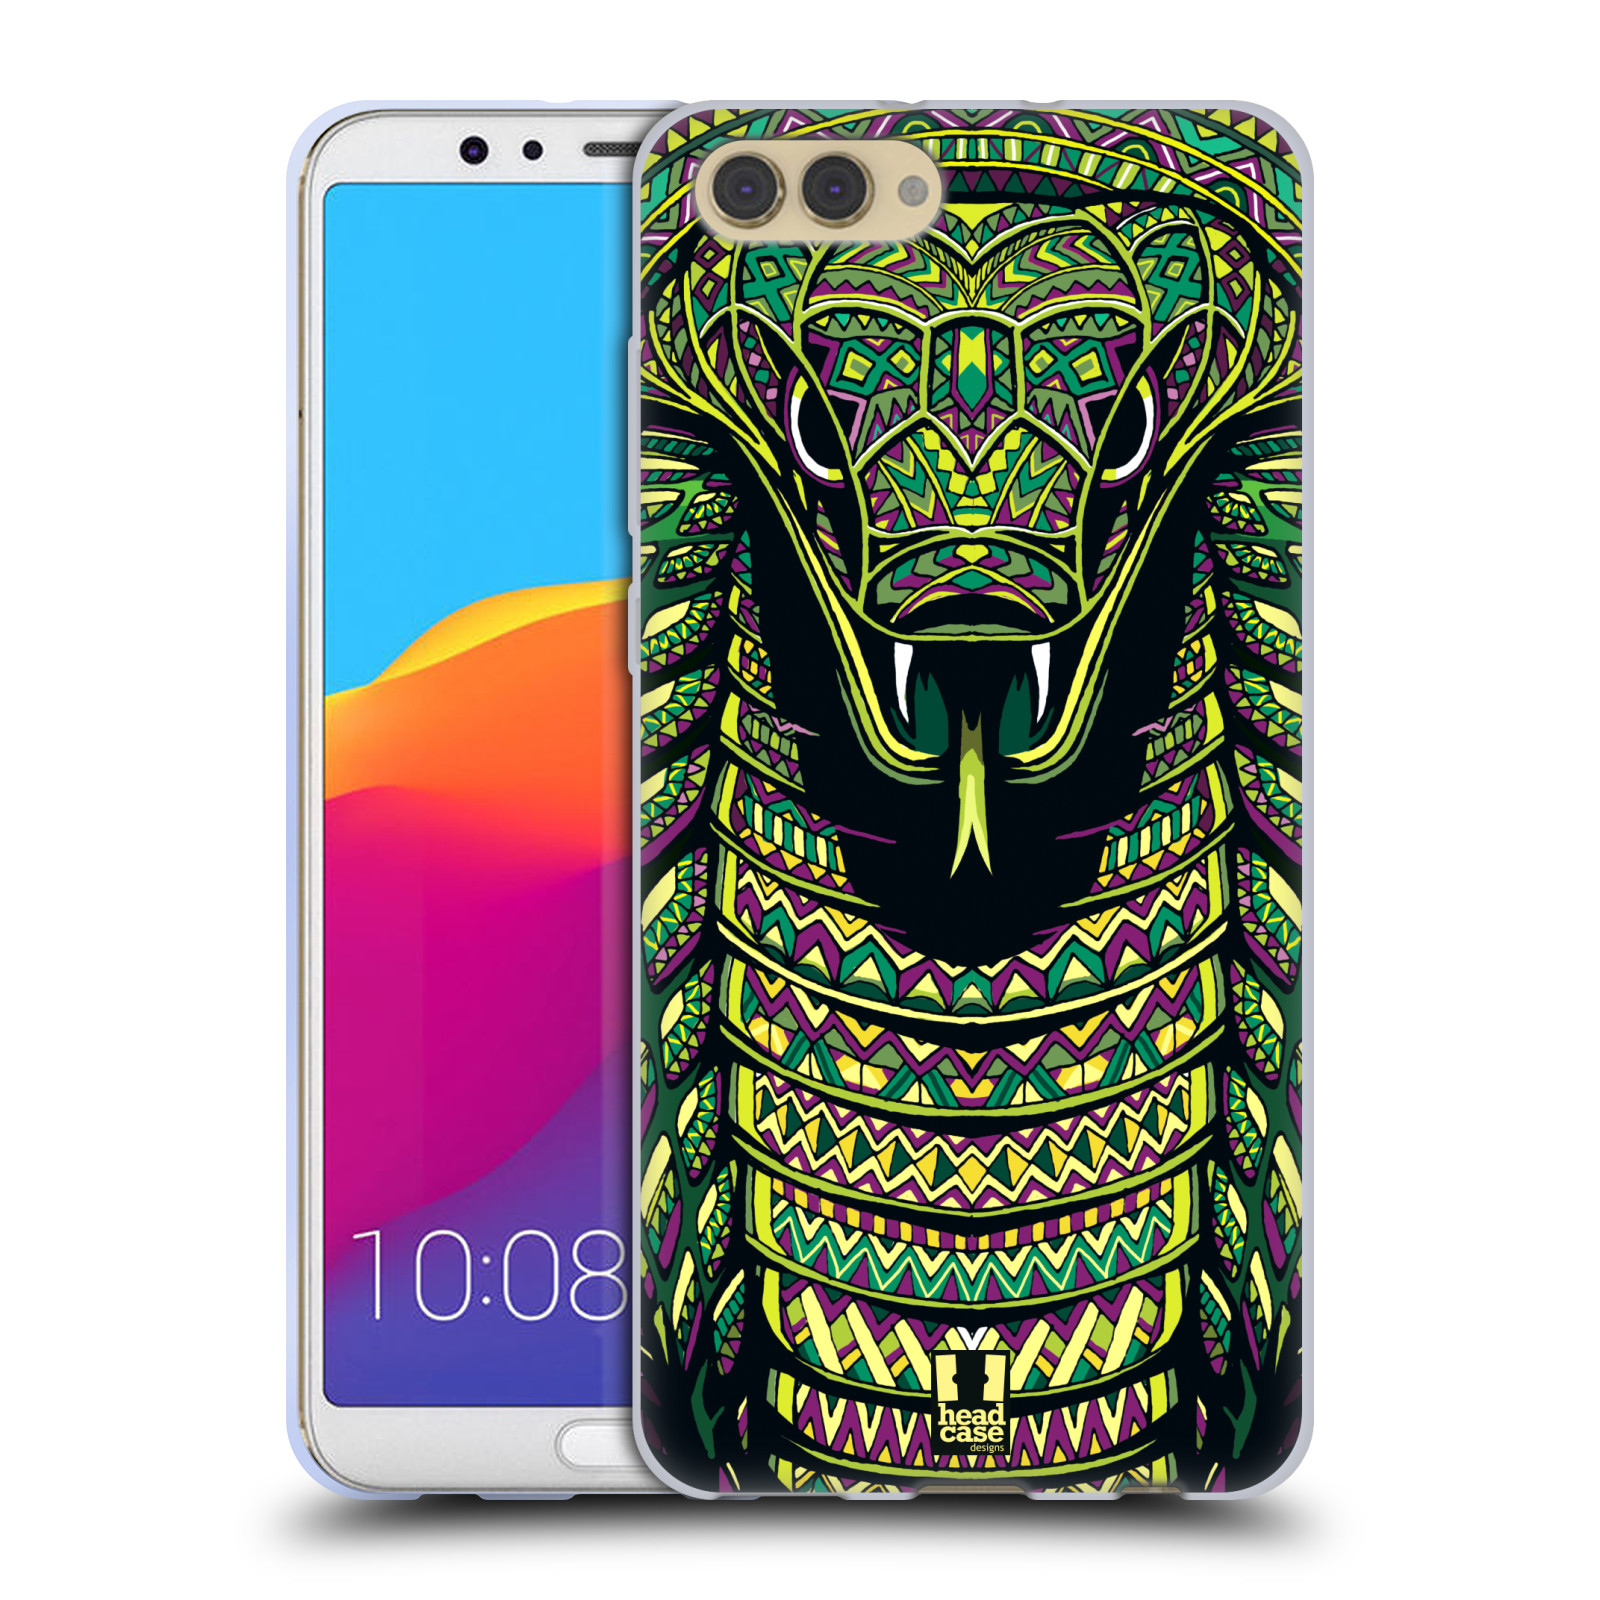 Silikonové pouzdro na mobil Honor View 10 - Head Case - AZTEC HAD